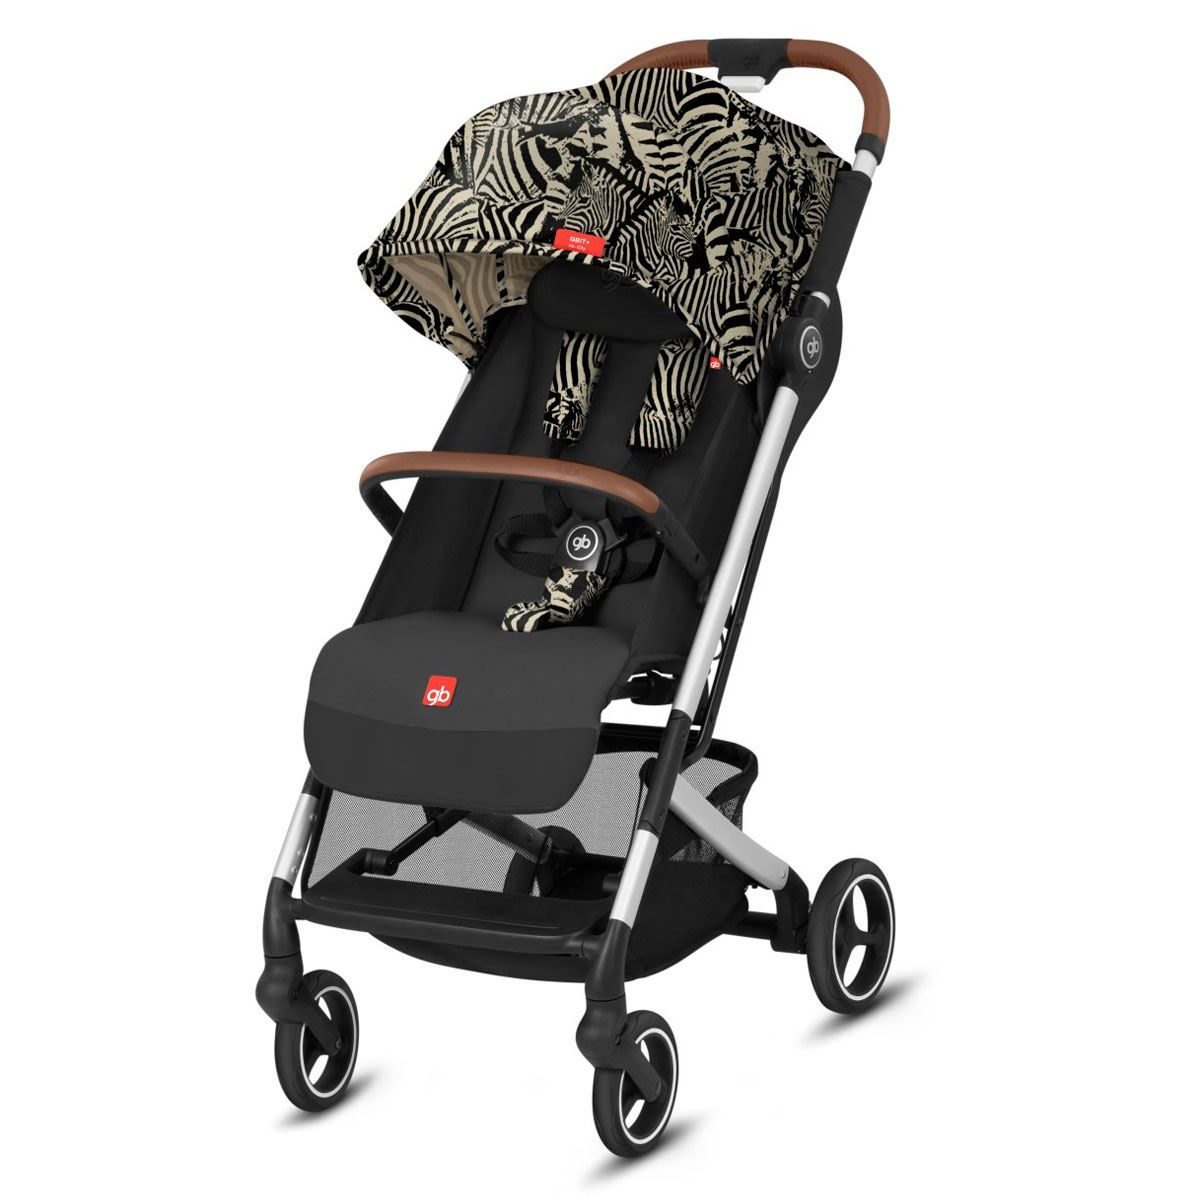 Silla de paseo Qbit plus all city Fashion Edition